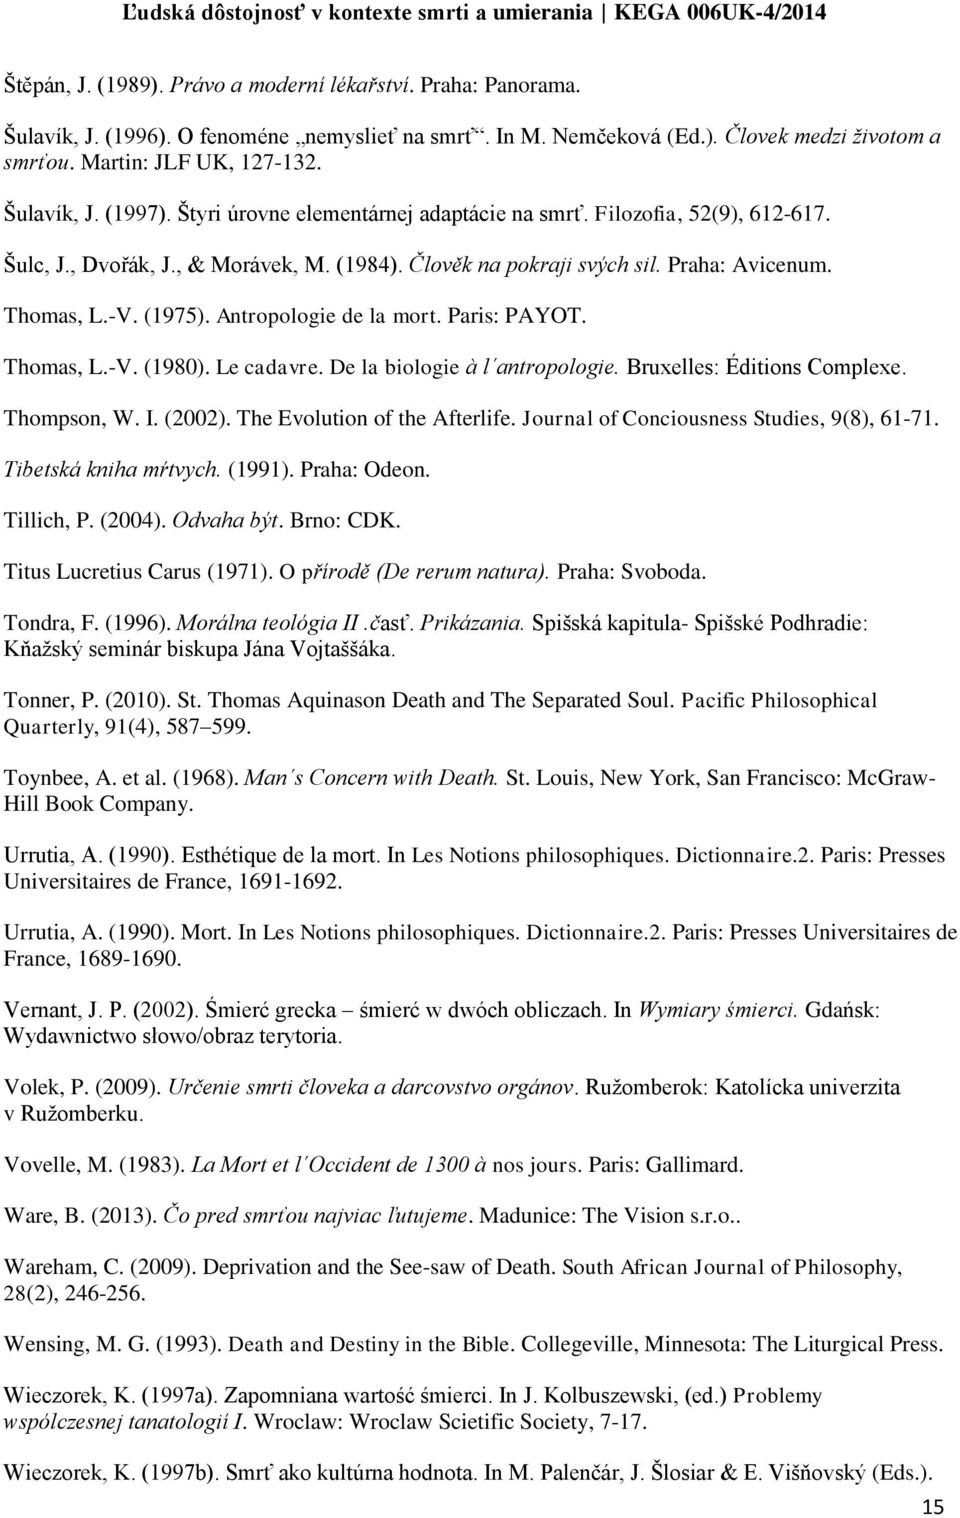 (1975). Antropologie de la mort. Paris: PAYOT. Thomas, L.-V. (1980). Le cadavre. De la biologie à l antropologie. Bruxelles: Éditions Complexe. Thompson, W. I. (2002). The Evolution of the Afterlife.